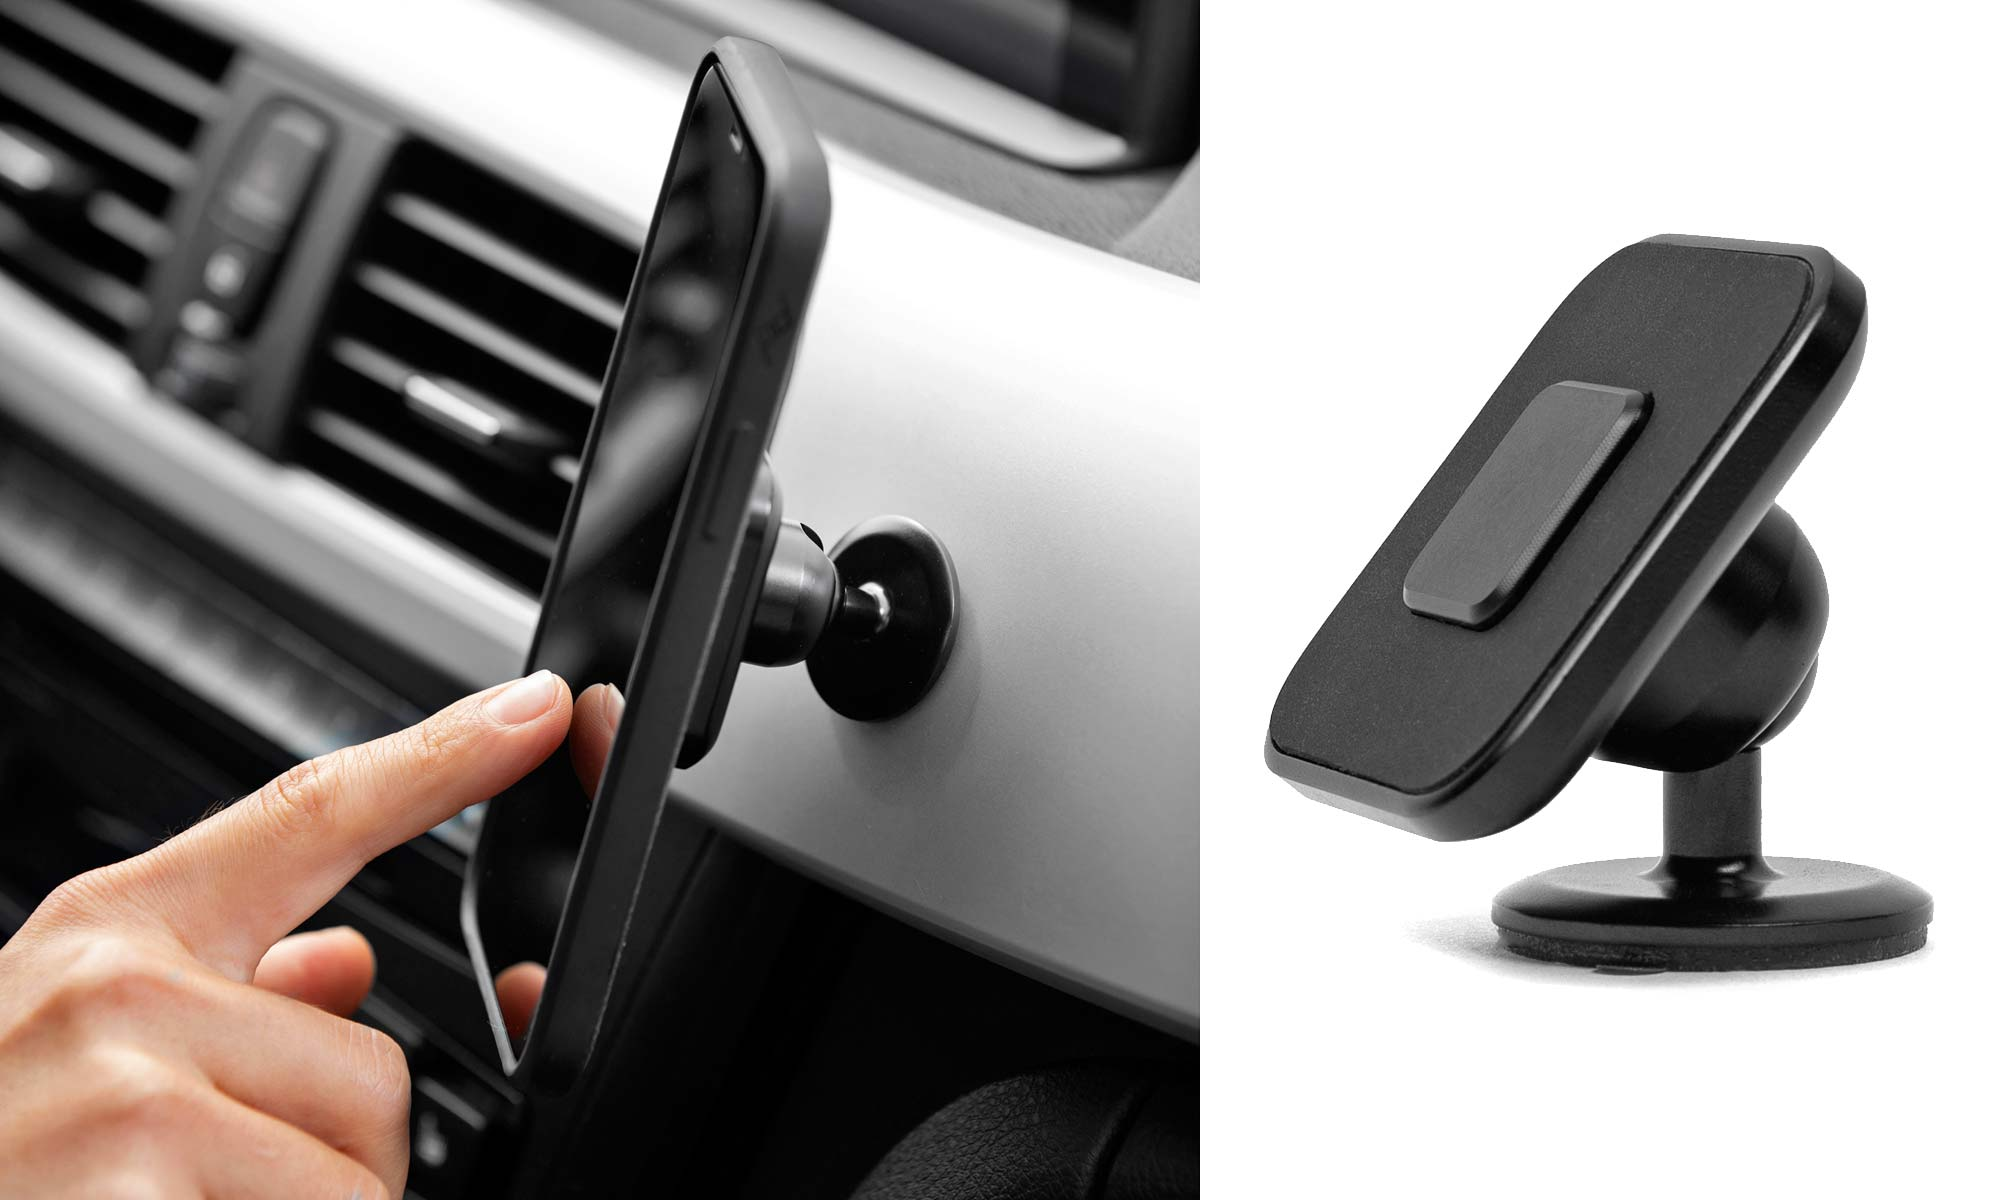 Mobile by Peak Design phone case and mounts, magnetic and secure locking mobile phone bike mounts everyday case charging adapters,car mounts